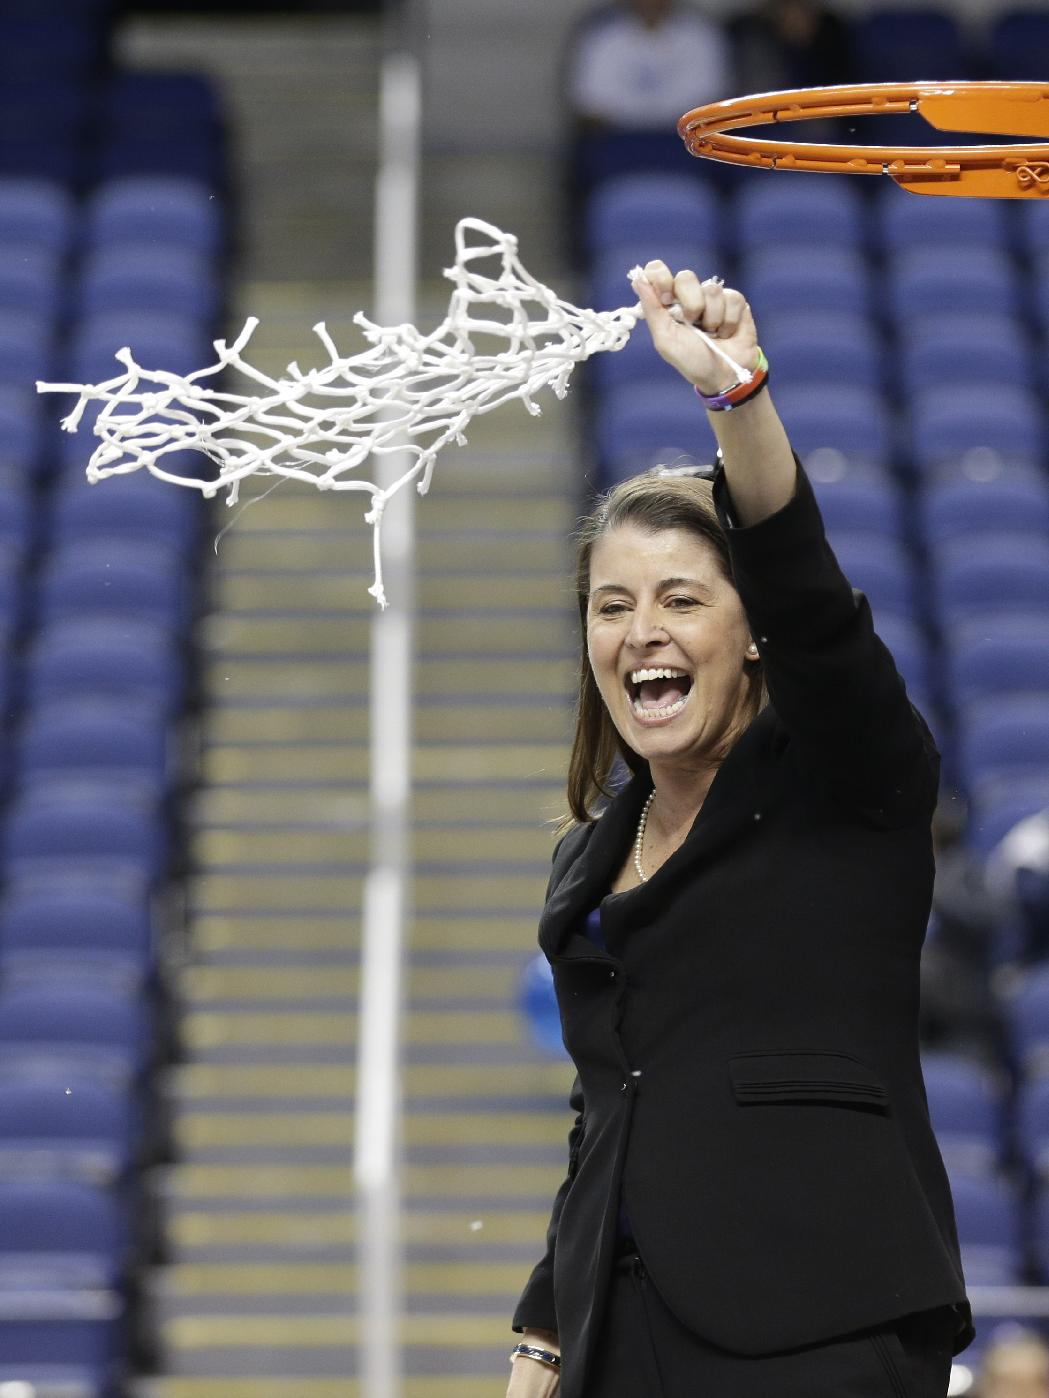 In this March 10, 2013 file photo, Duke head coach Joanne P. McCallie waves the net at fans and players after an NCAA college basketball game against North Carolina at the Atlantic Coast Conference tournament in Greensboro, N.C. Duke returns all five starters and its top seven scorers to build on its recent domination in the Atlantic Coast Conference